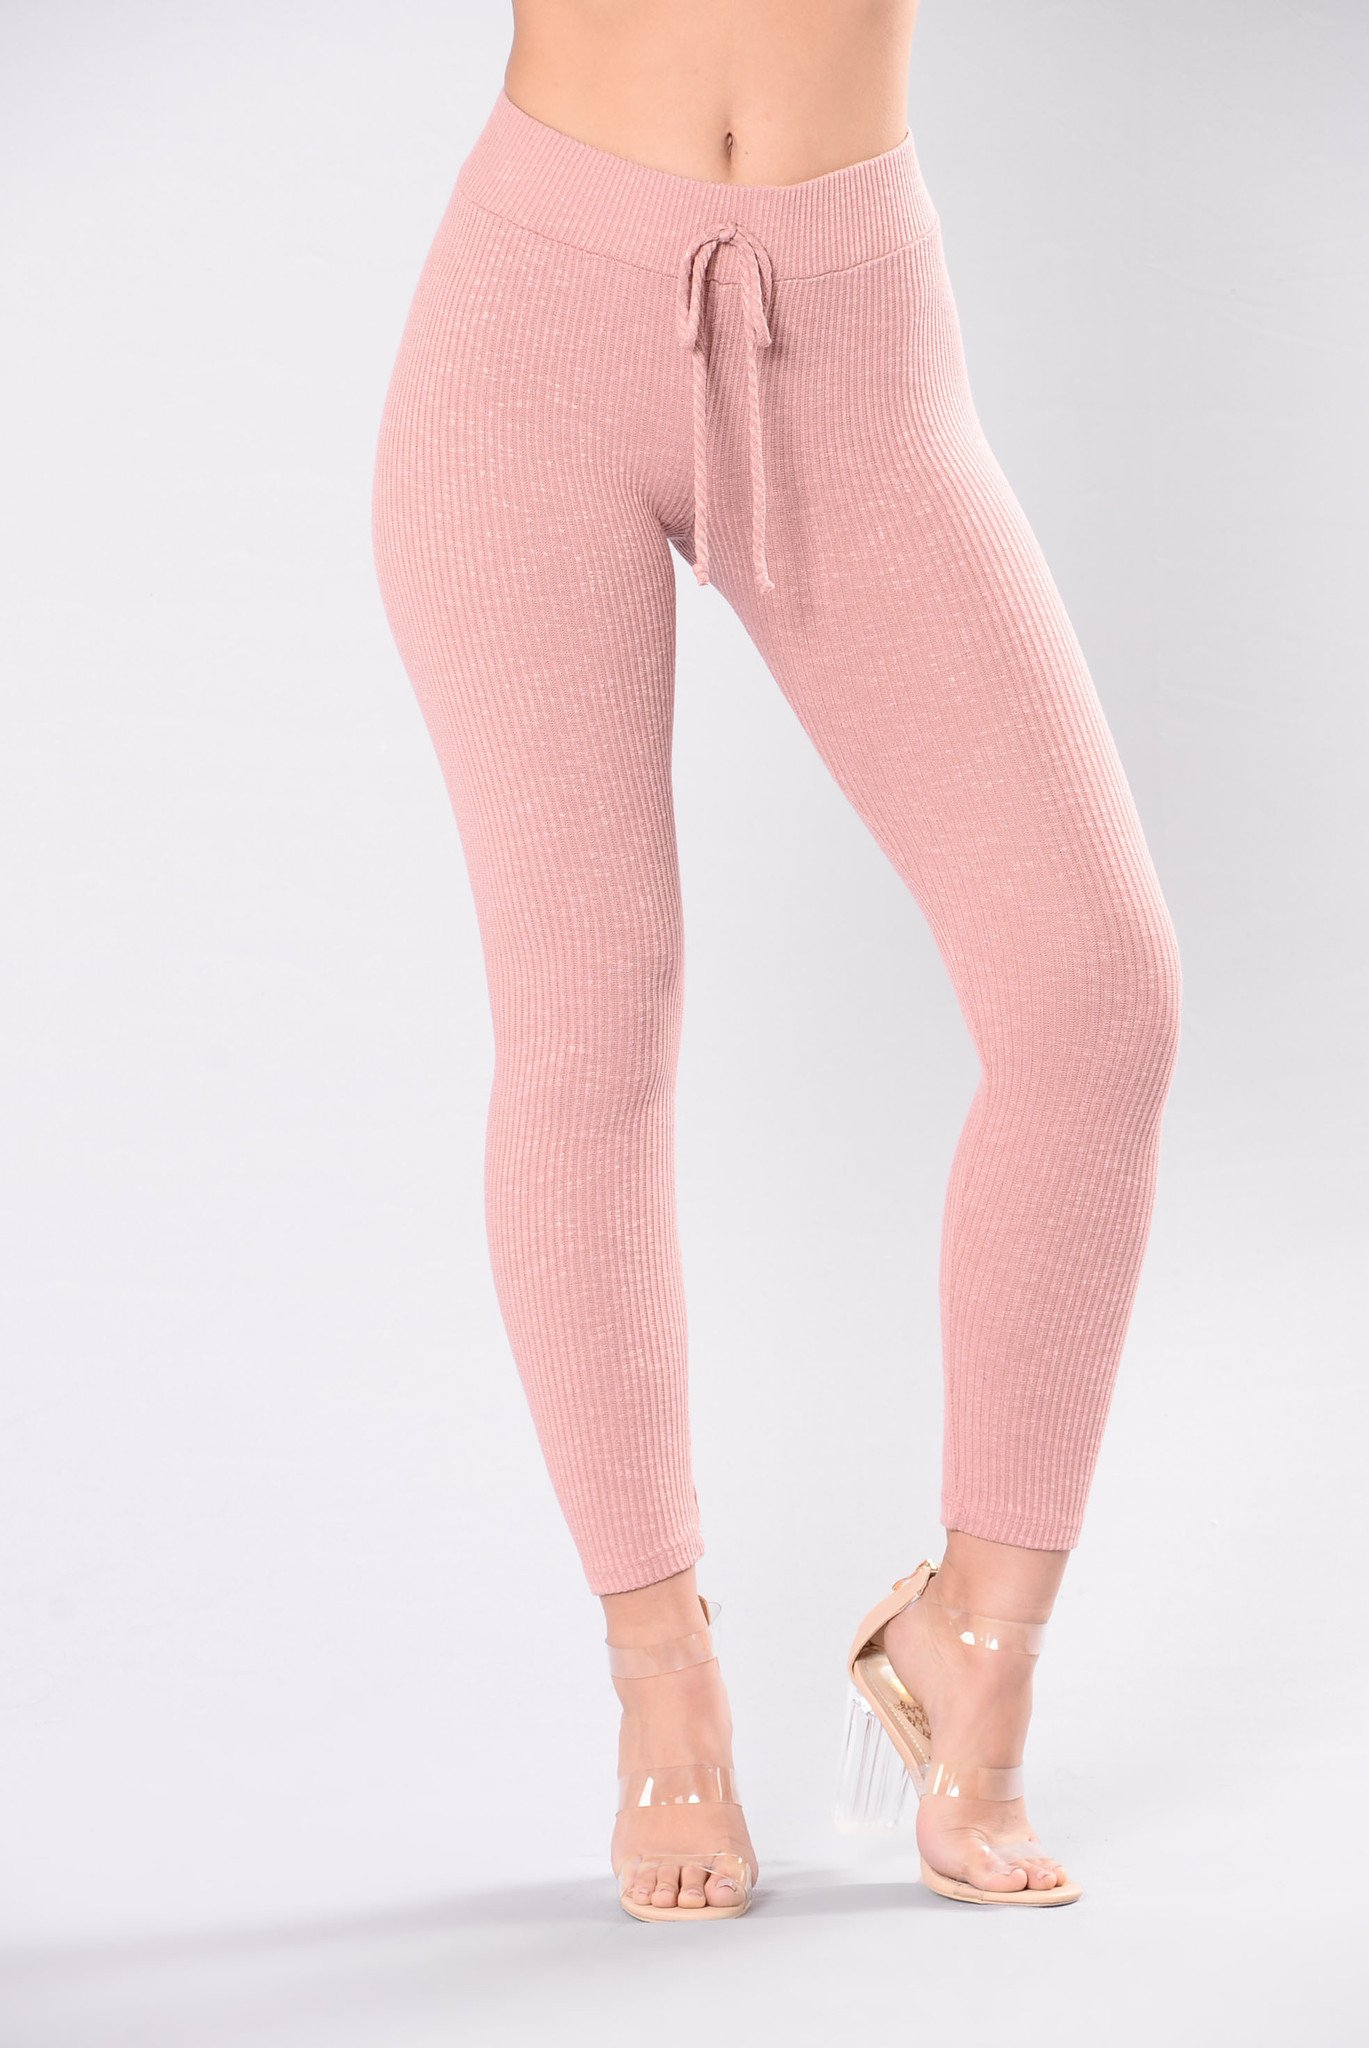 Guide to choose the pink leggings